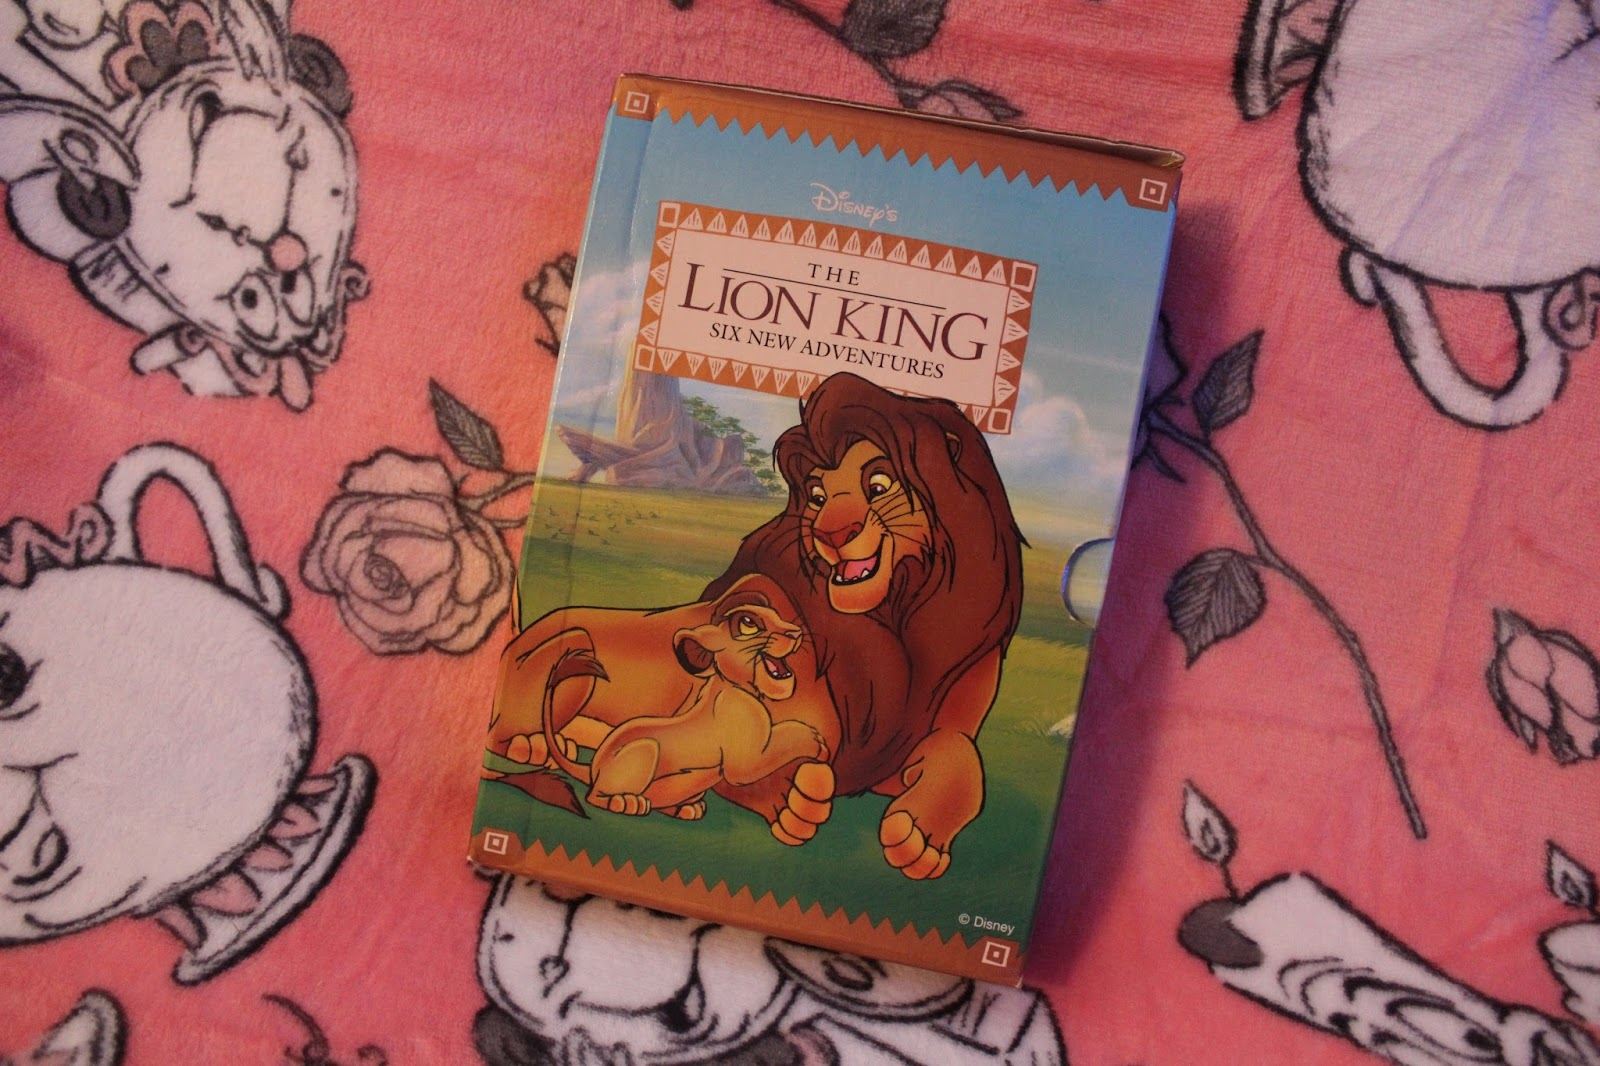 The lion king six new adventures pdf